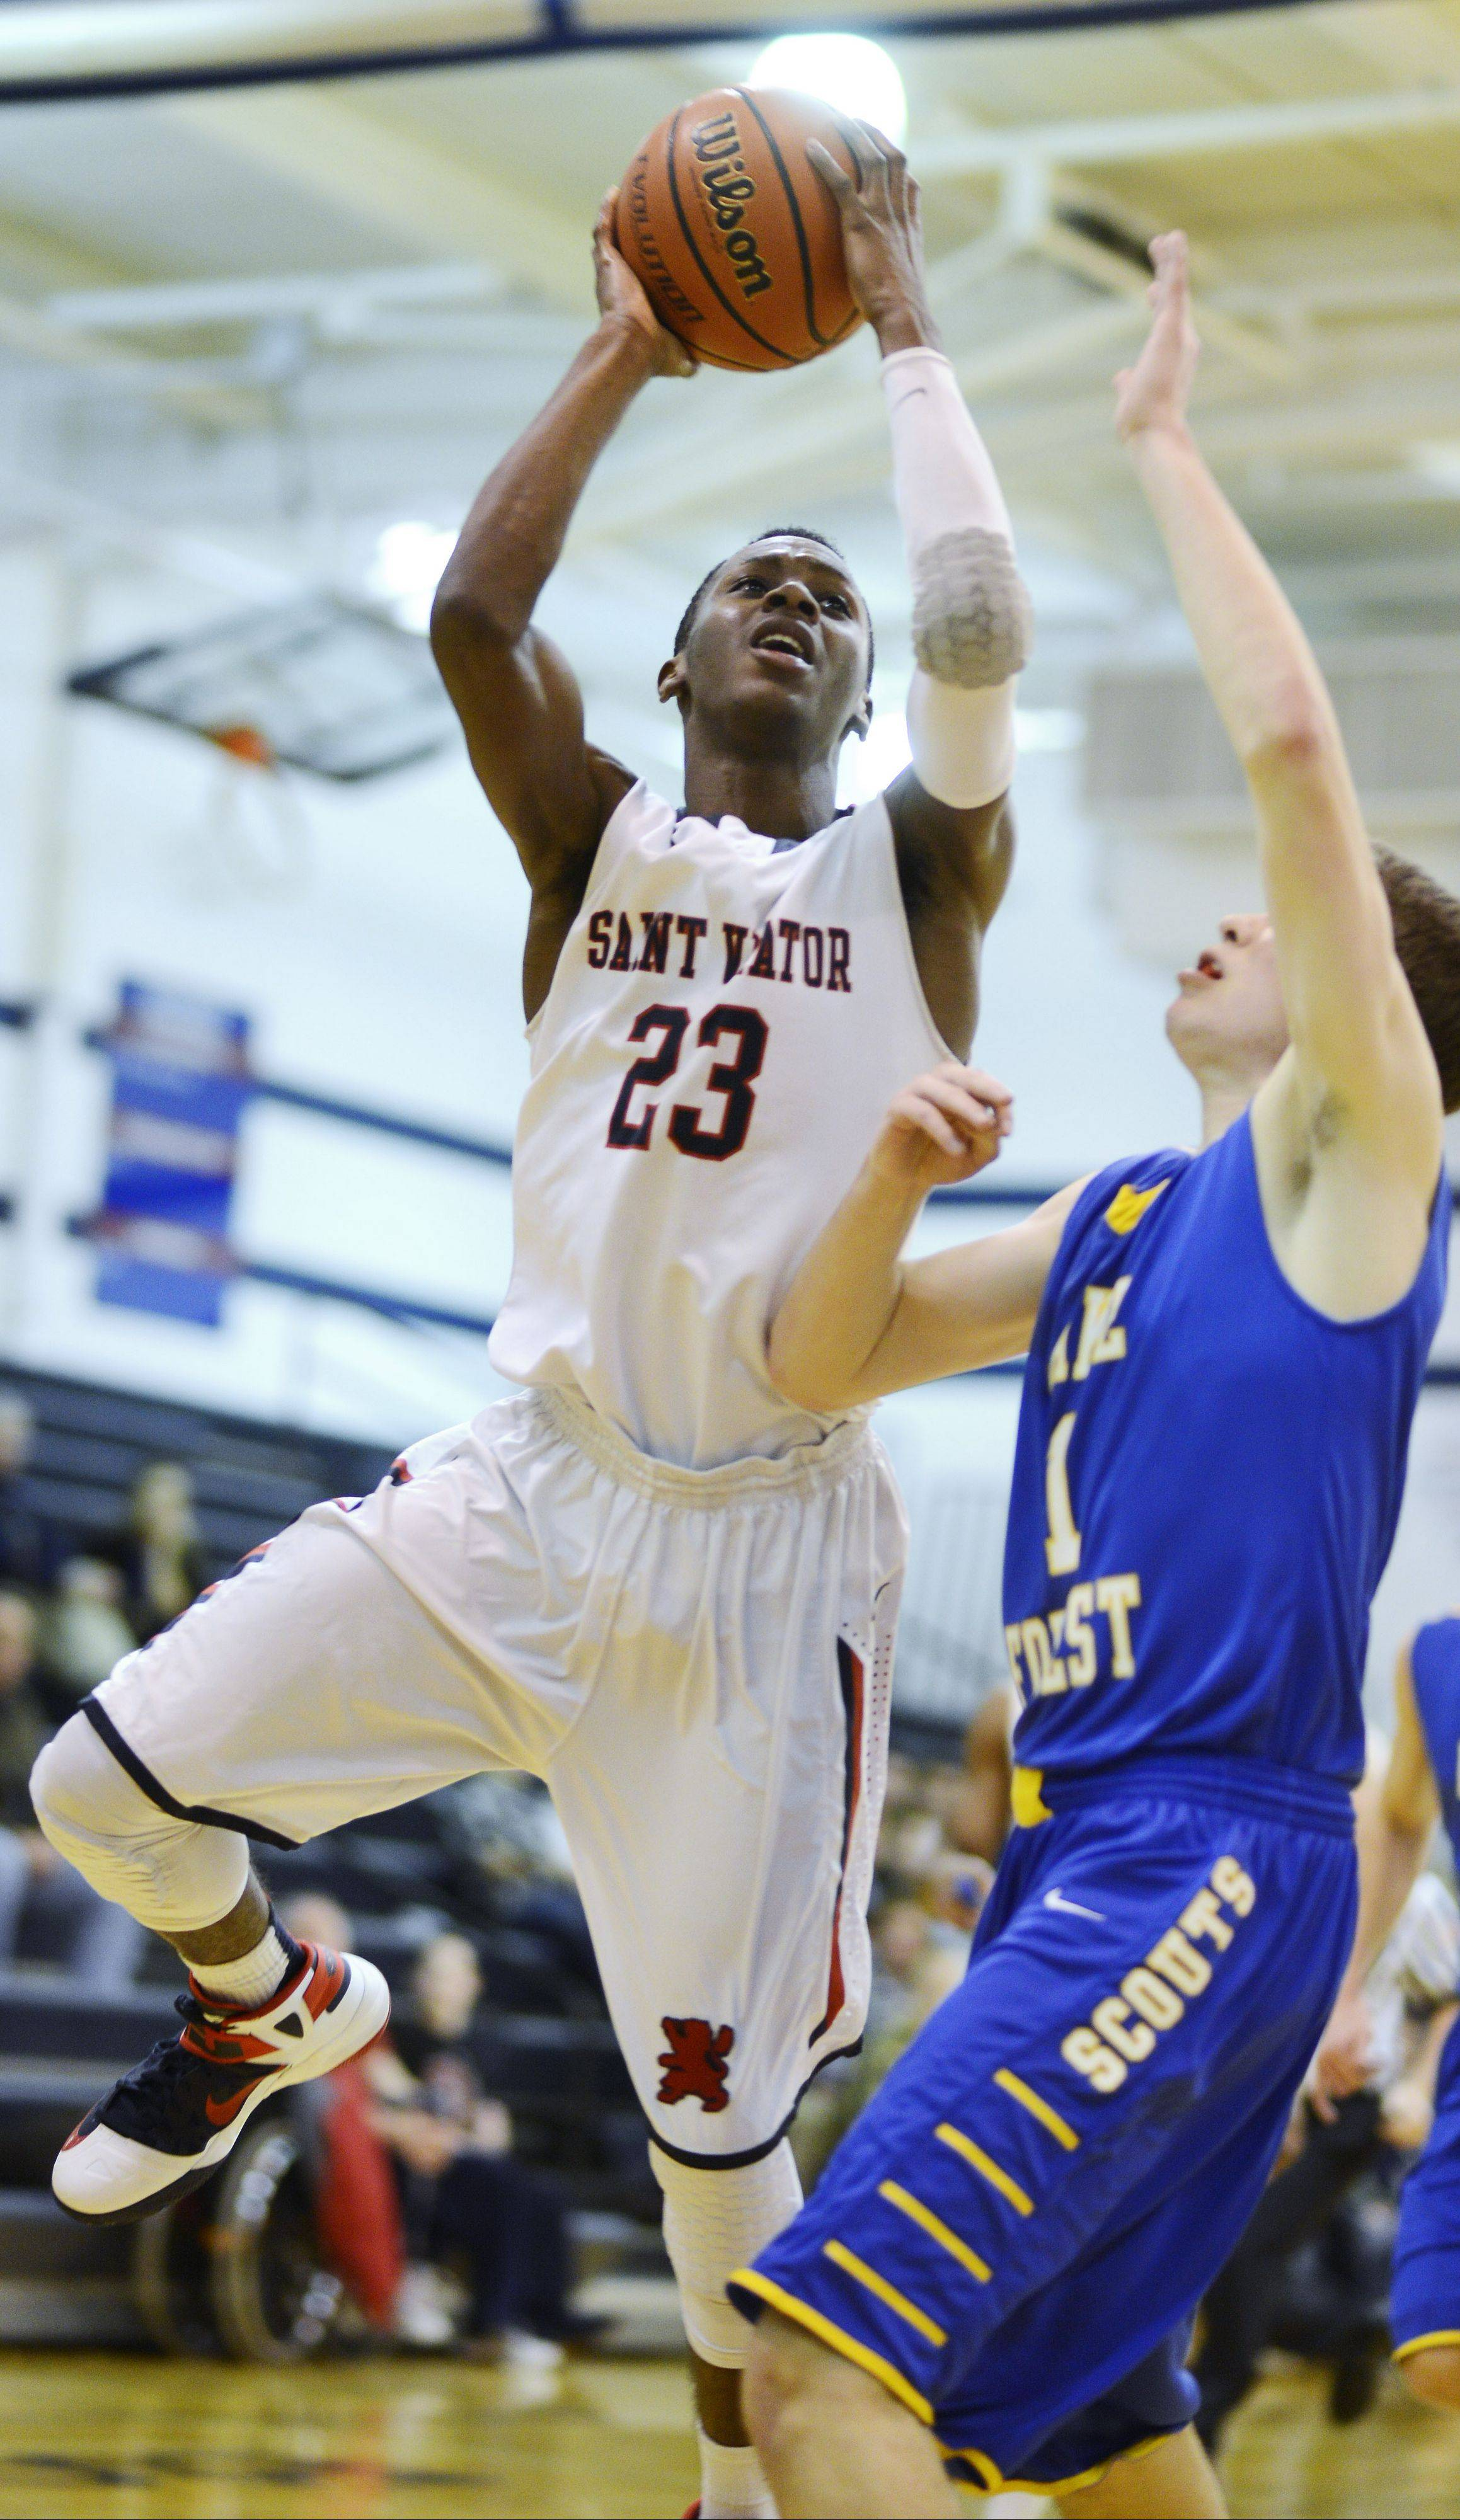 St. Viator's Ore Arogundade attempts a short jump shot against Lake Forest defender Ben Simpson during Tuesday's nonconference game in Arlington Heights.